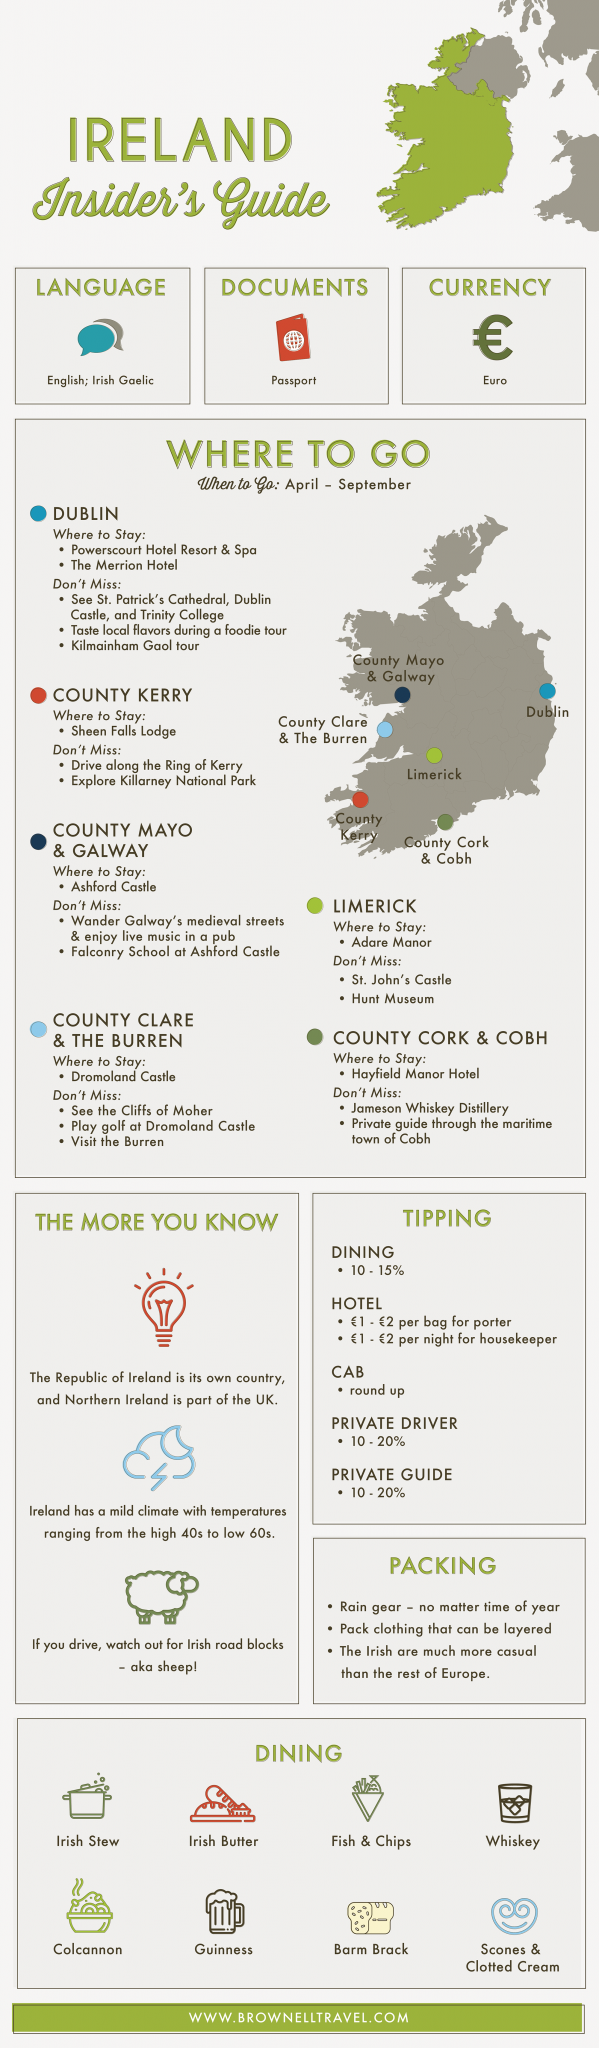 insiders-guide-to-ireland